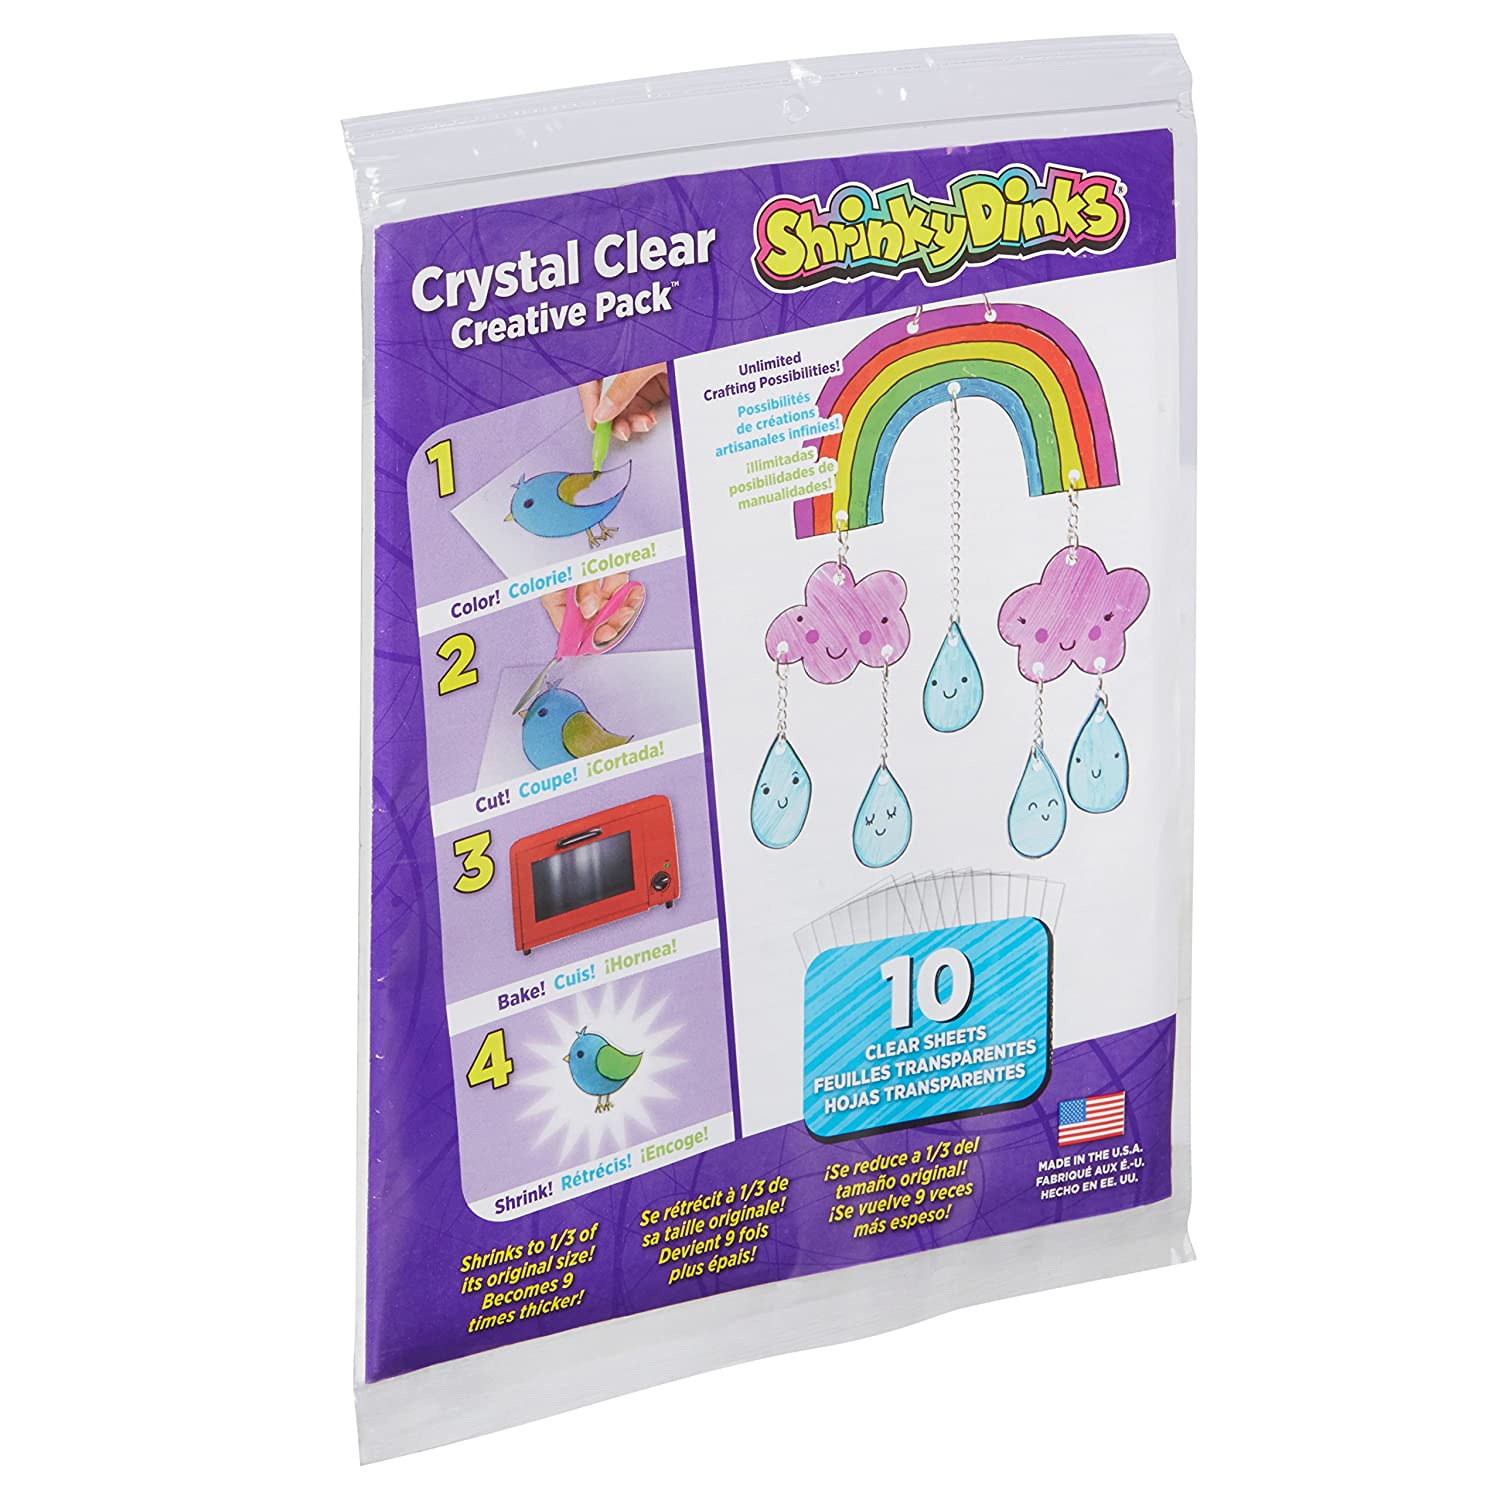 Shrinky Dinks Creative Pack 10 Hojas De Cristal Transparente